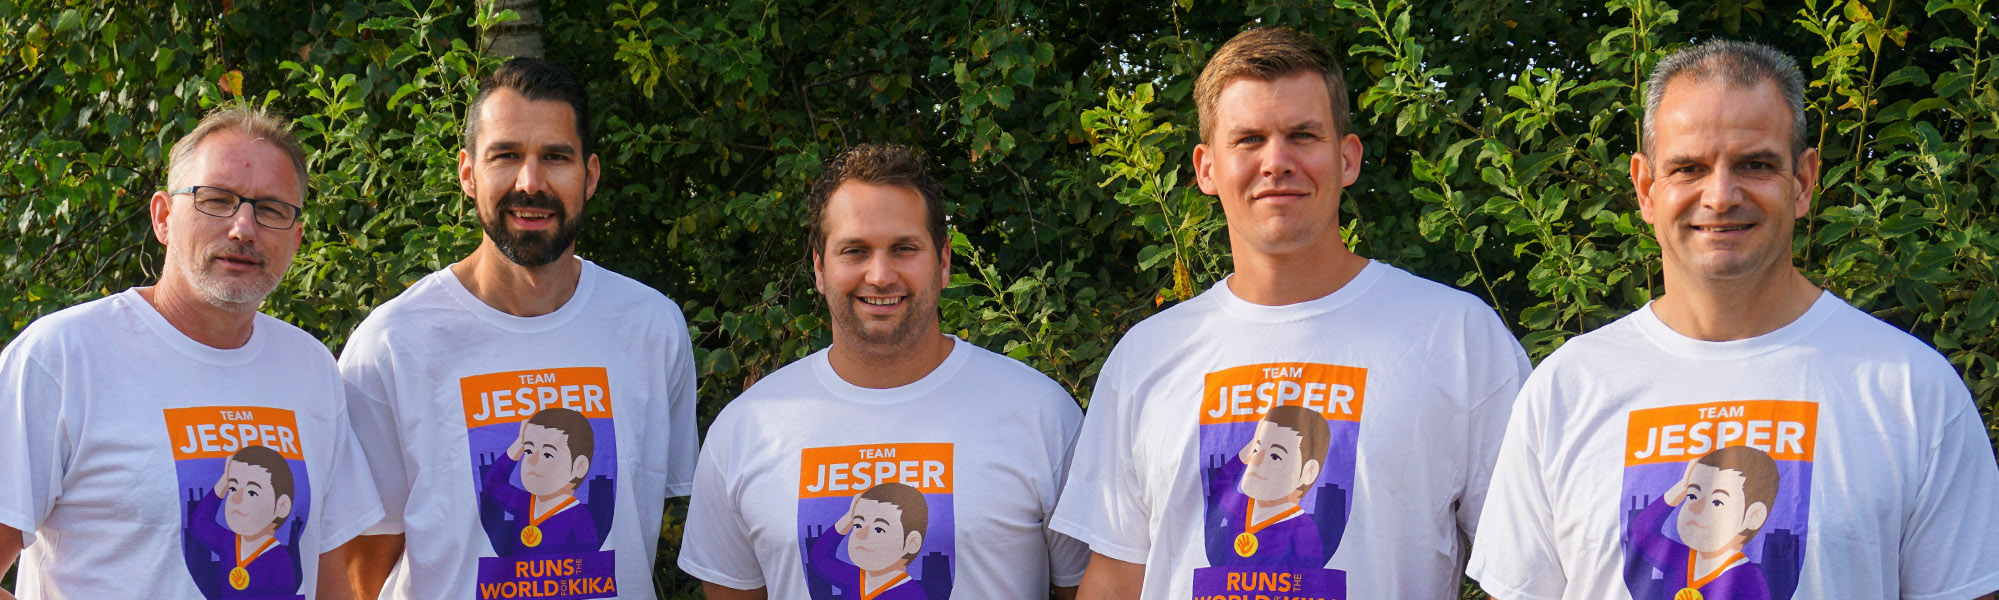 Foto van team Jesper tijdens Run for KiKa Marathon.